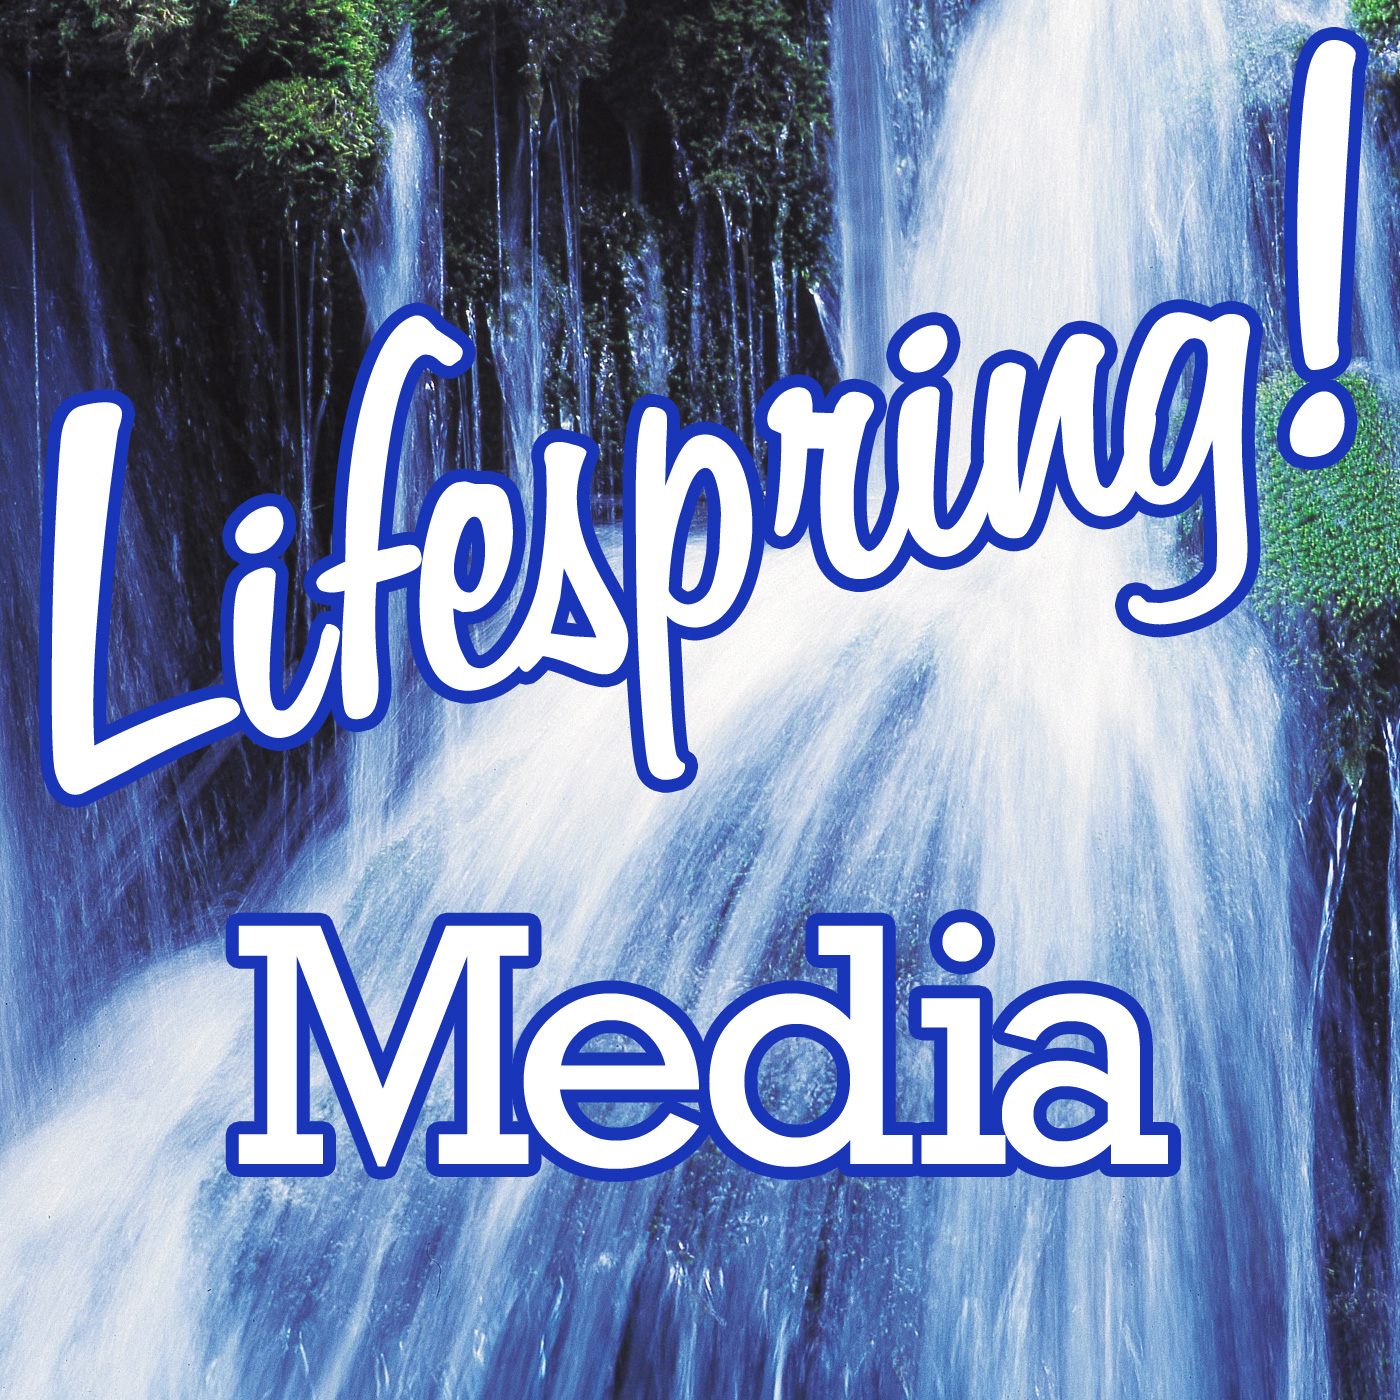 Lifespring! Media: Quality Christian and Family Entertainment Since 2004